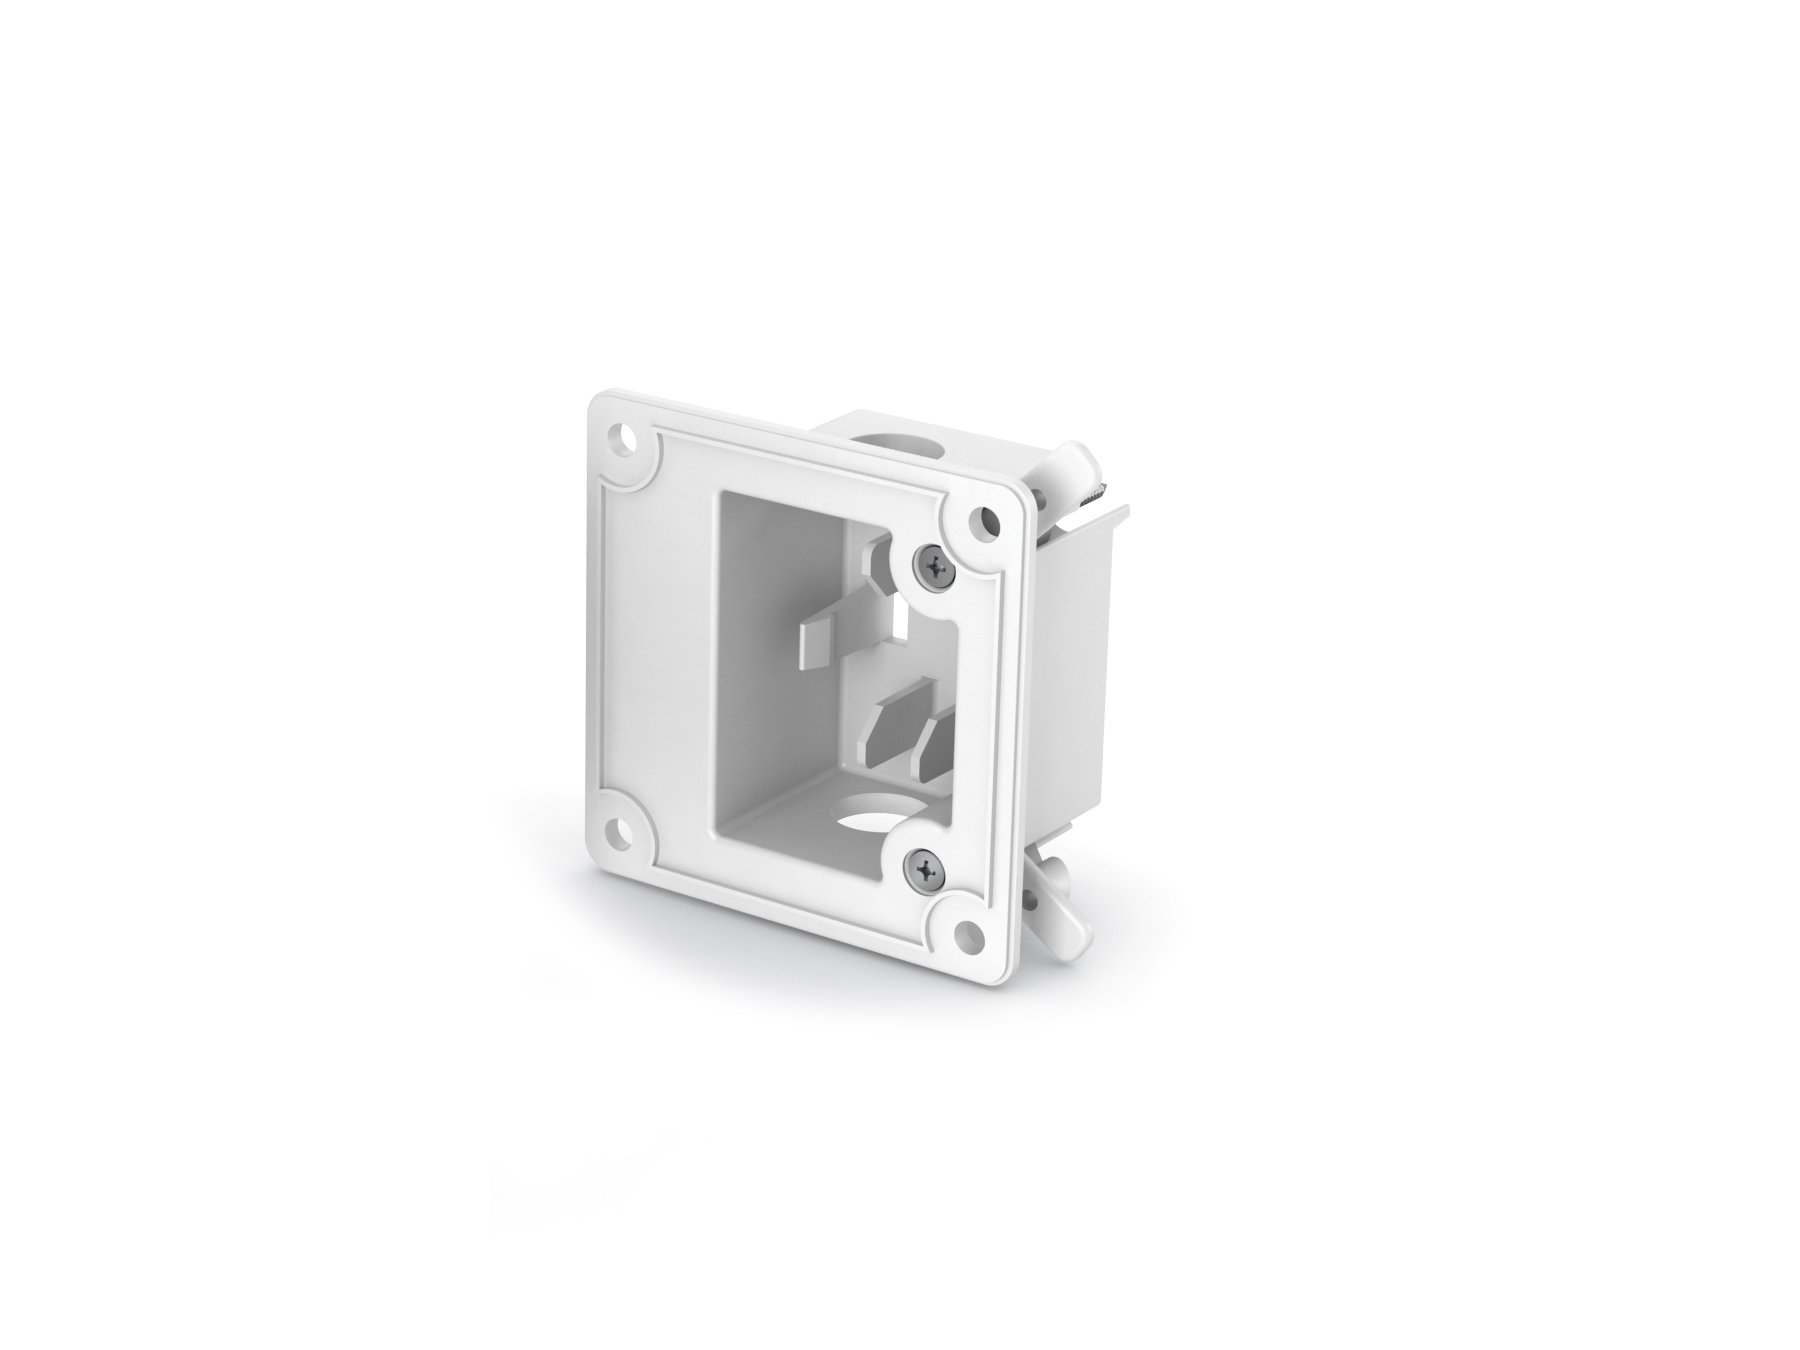 BOSE DS ON WALL JUNCTION BOX 6 PACK - Whtie